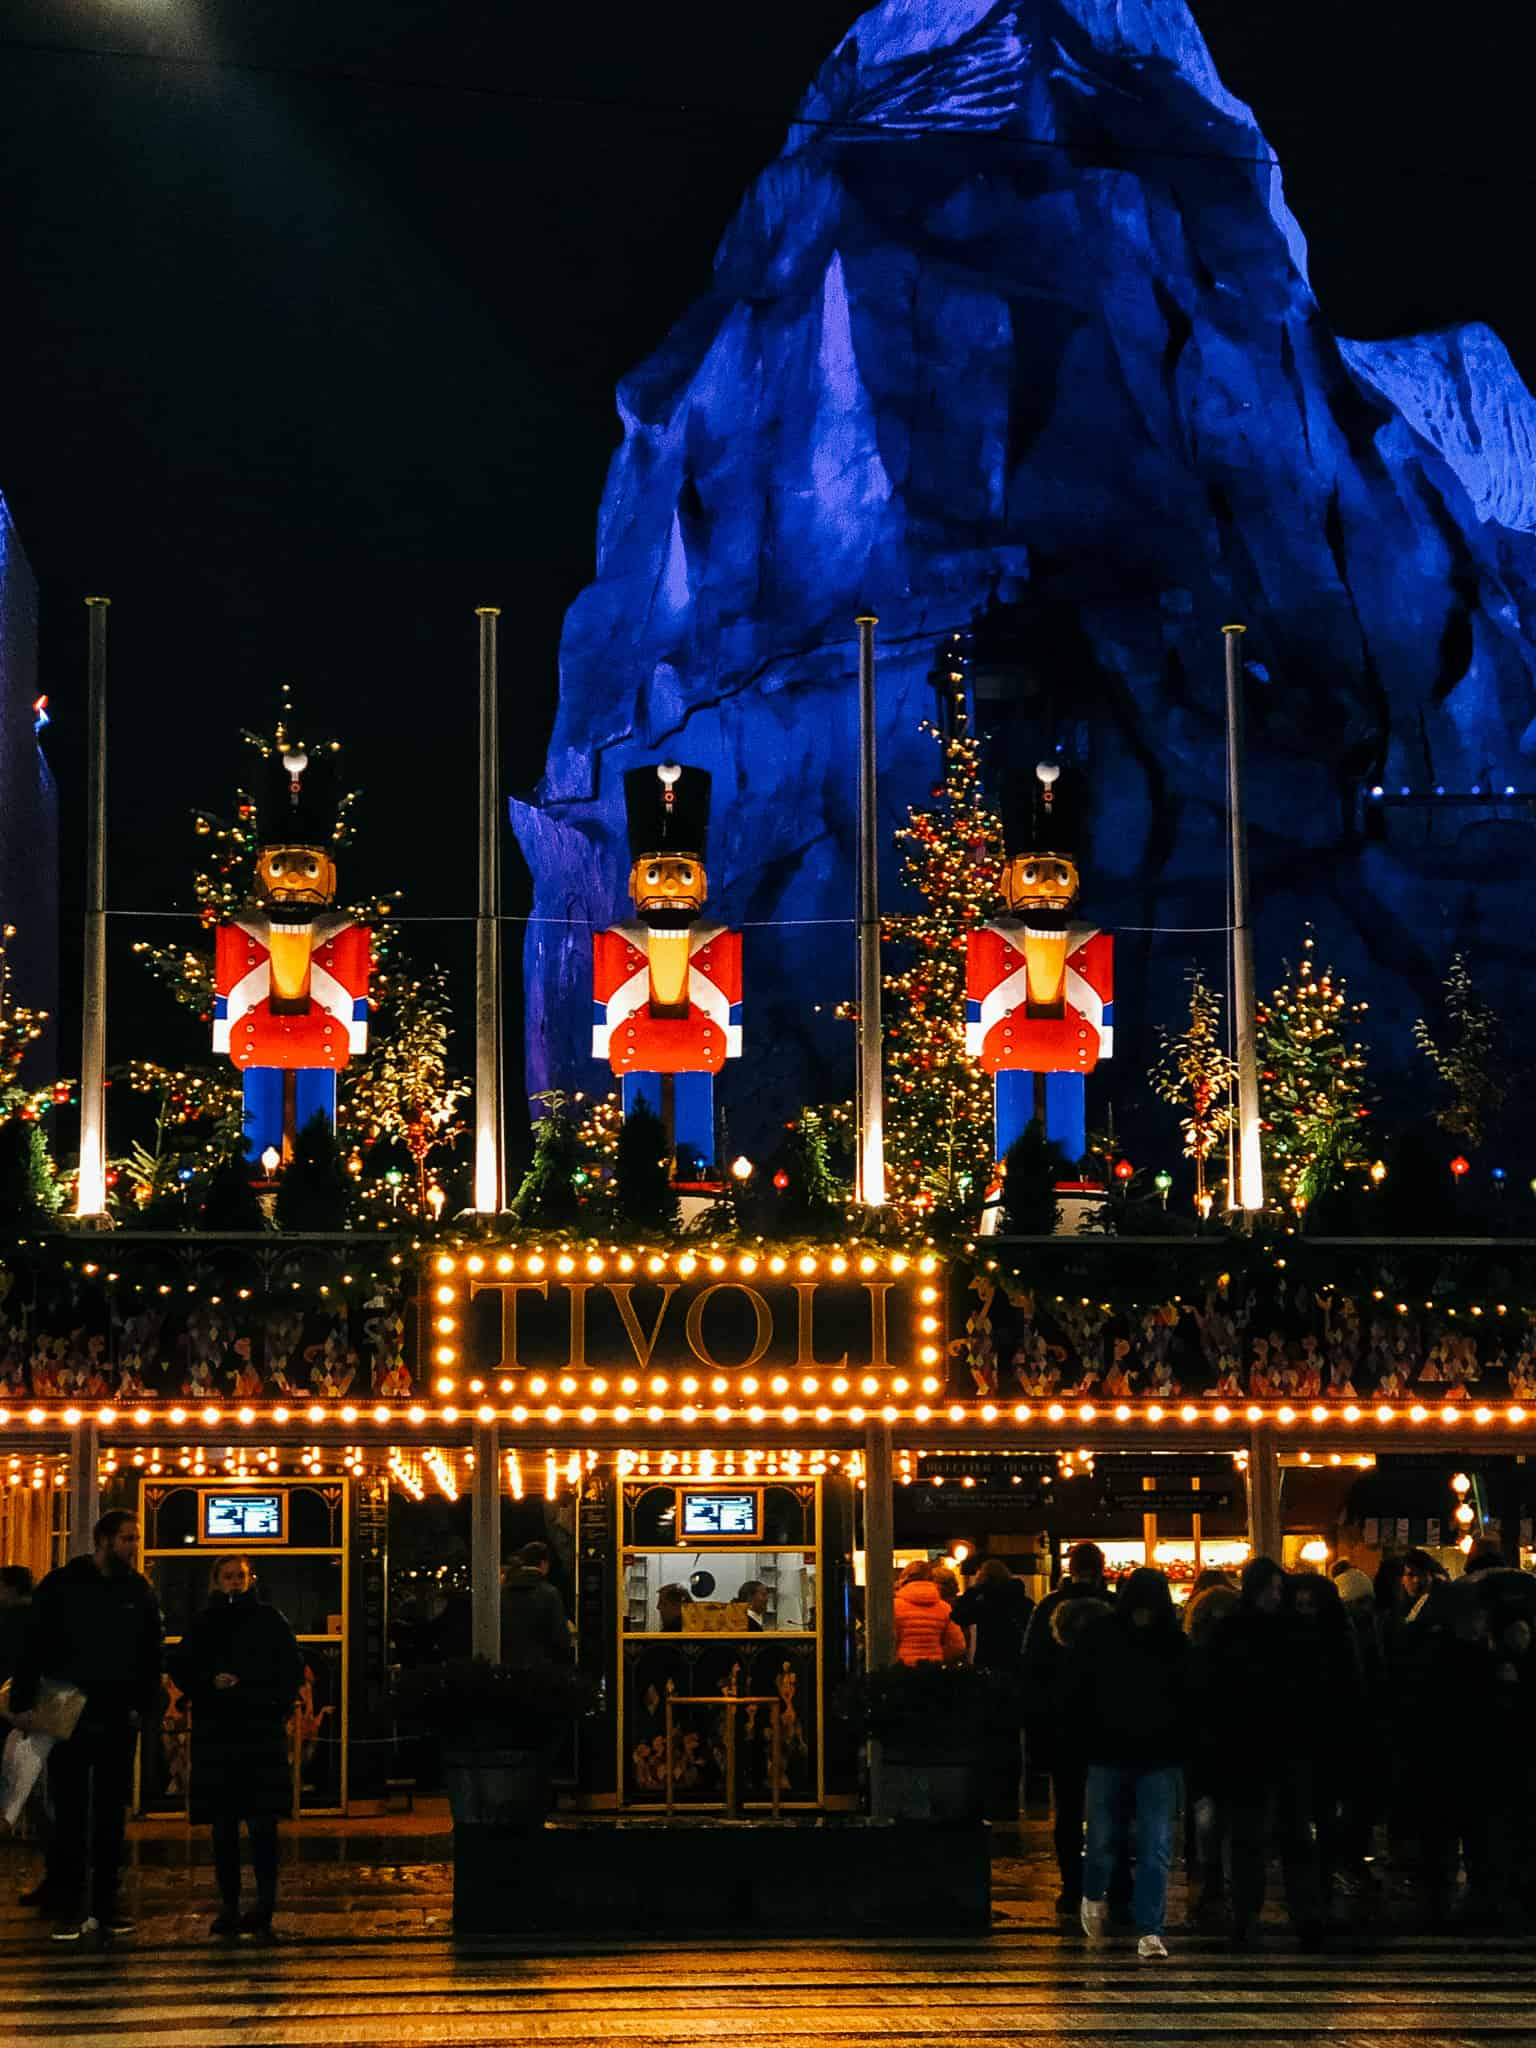 The Best Place To Experience Christmas The Tivoli Gardens Christmas Market Travelling Thirties